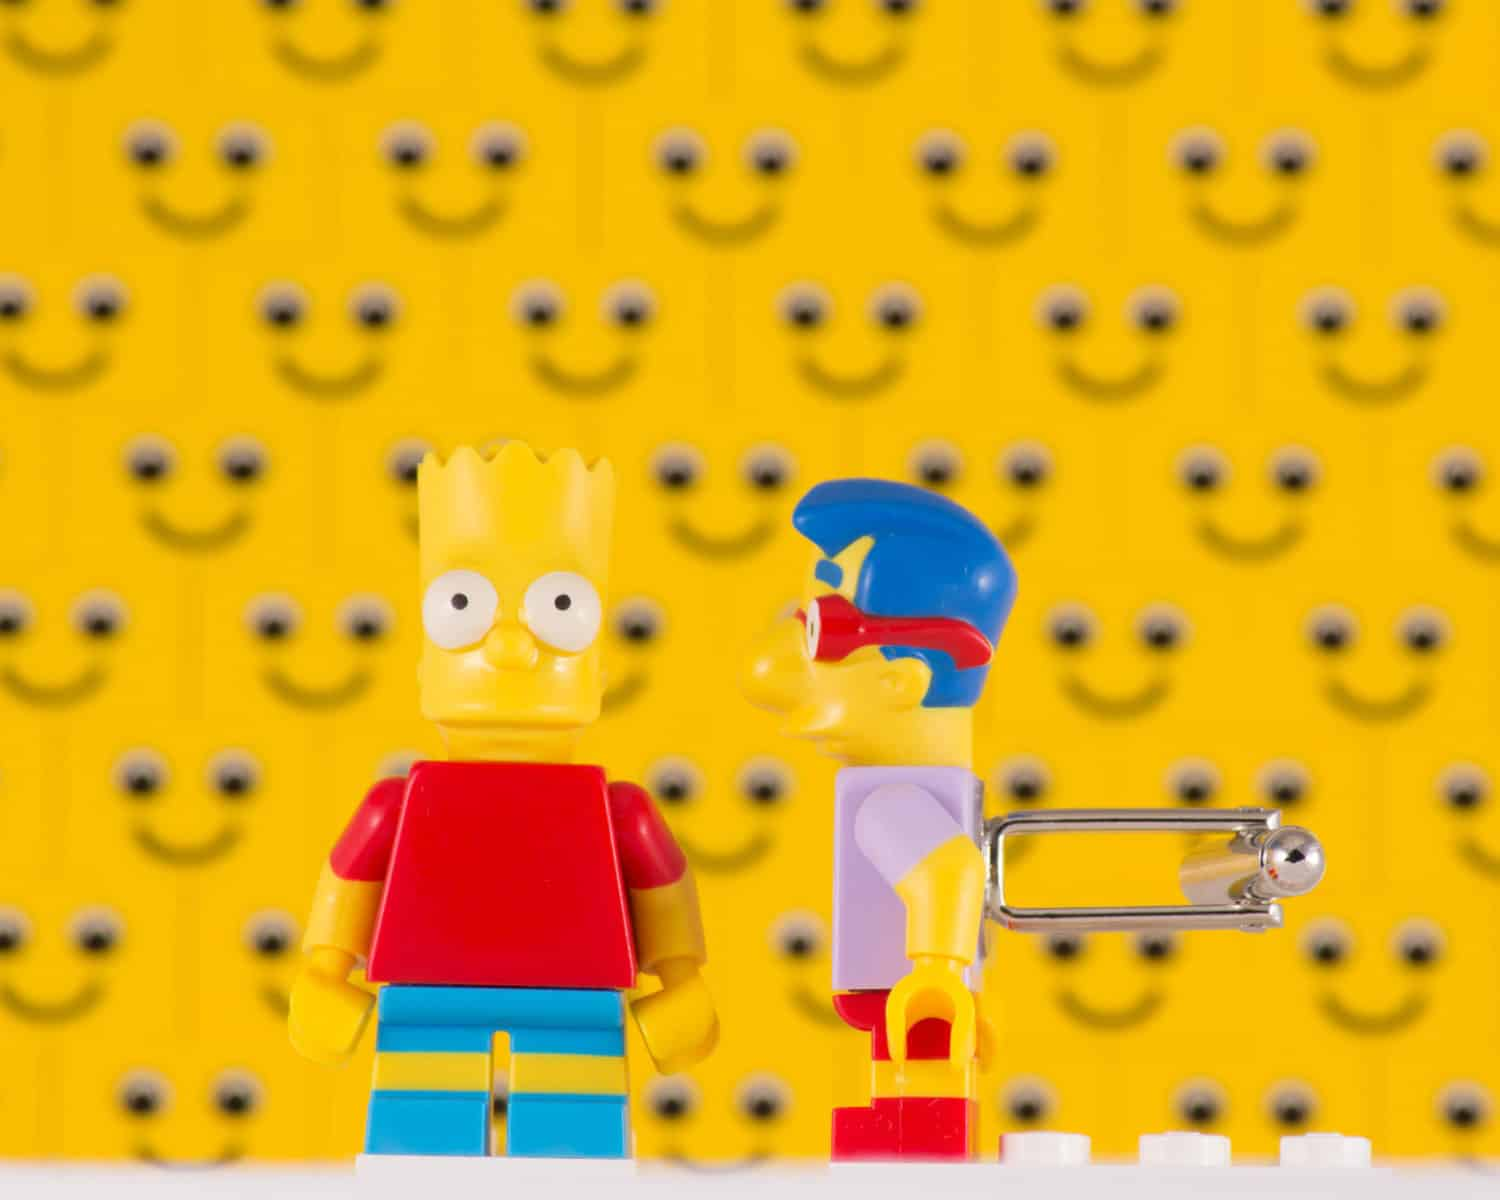 Bart and Millhouse Simpsons Lego Cufflinks Cool Gift to Buy Him